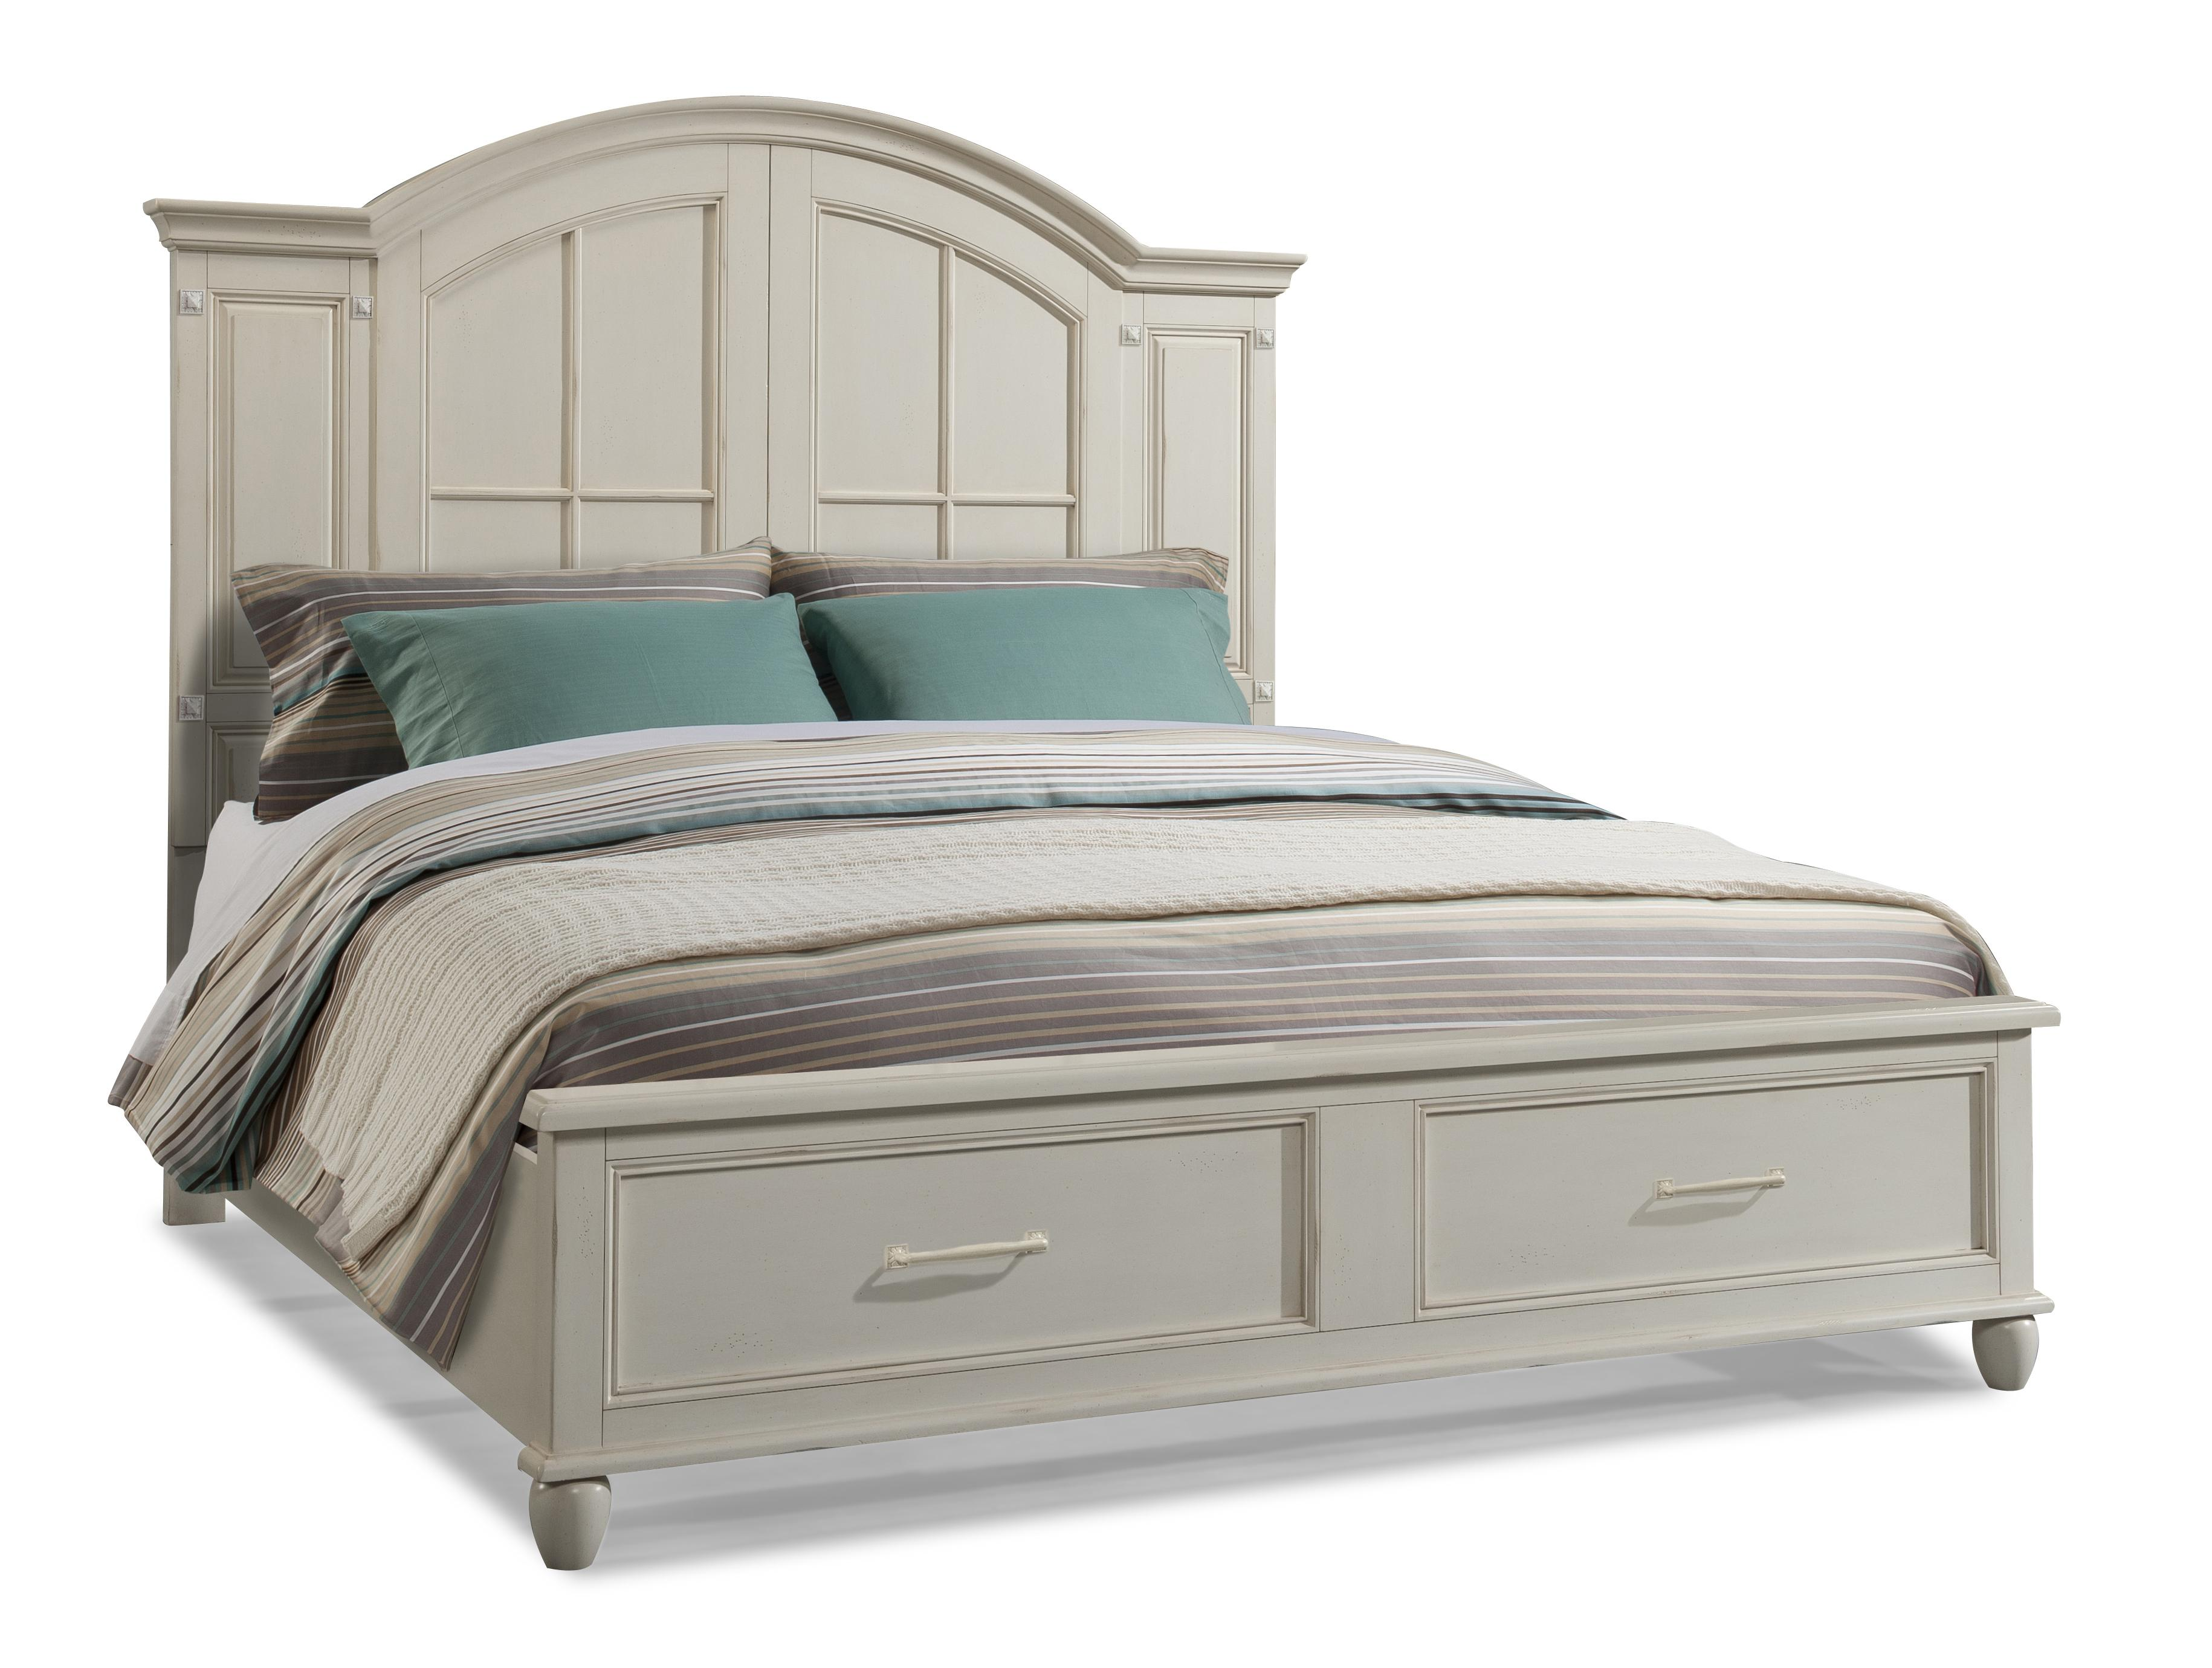 Easton Collection Sea Breeze Island Bliss-White Queen Panel Storage Bed - Item Number: 425-150 QBED